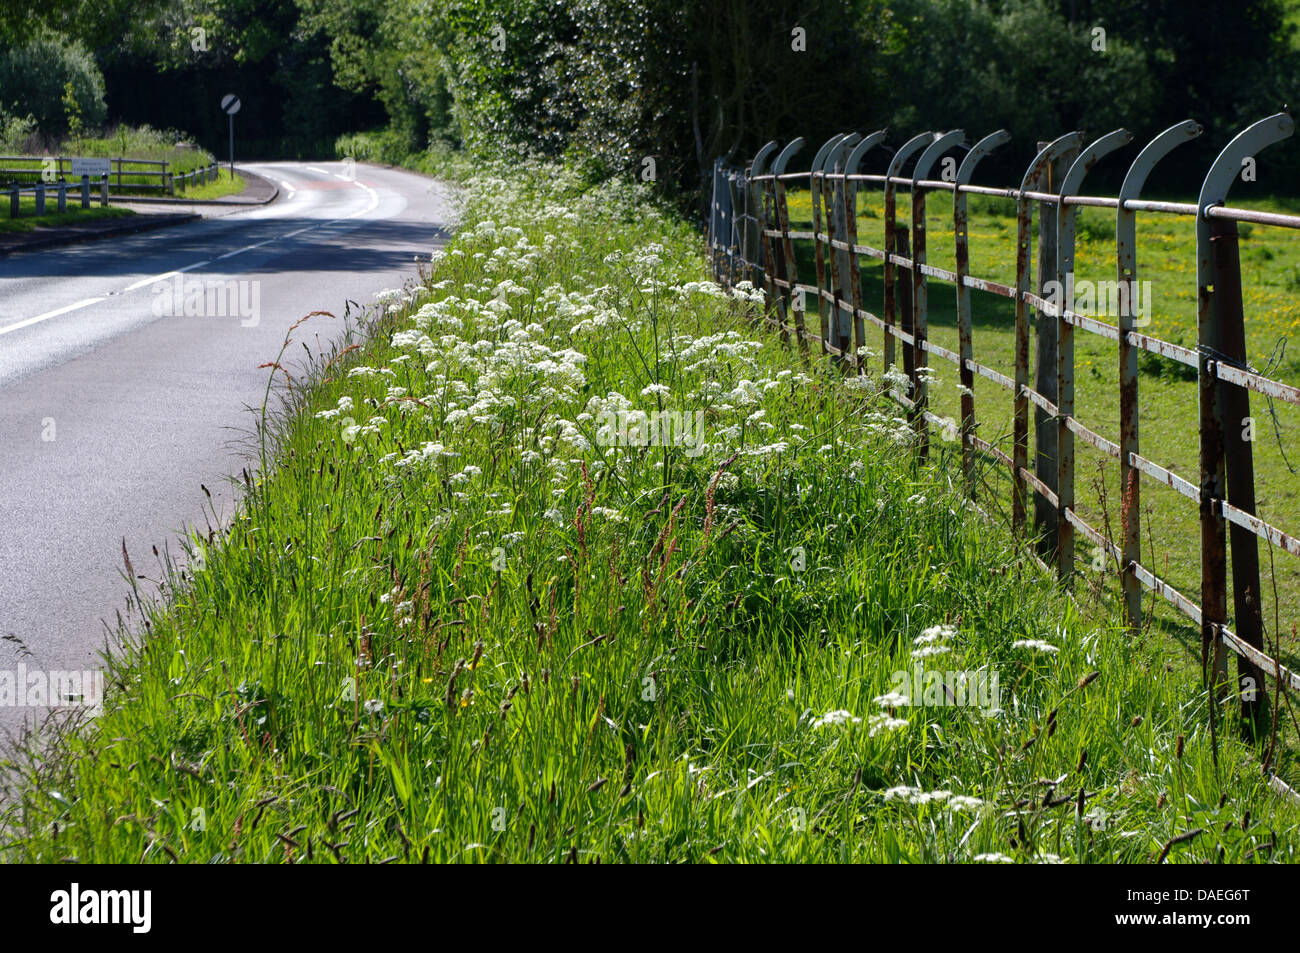 Roadside verge in spring with hedge parsley (Ladies' Lace), Alcester Road, Bromsgrove - Stock Image